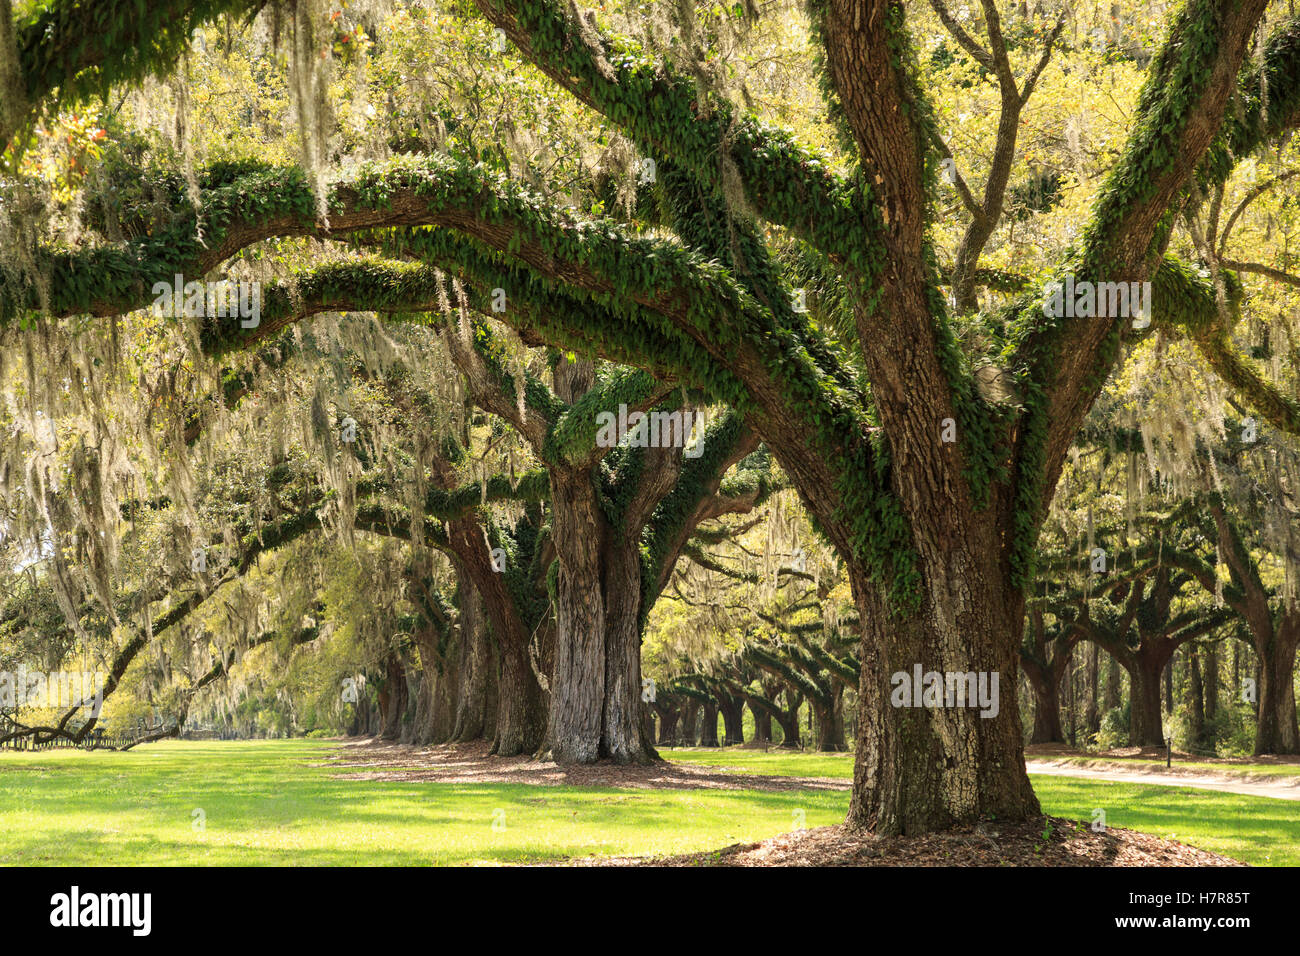 Live Oaks planted in 1743, Boone Hall Plantation and Gardens near Charleston, Mt Pleasant, South Carolina, USA - Stock Image